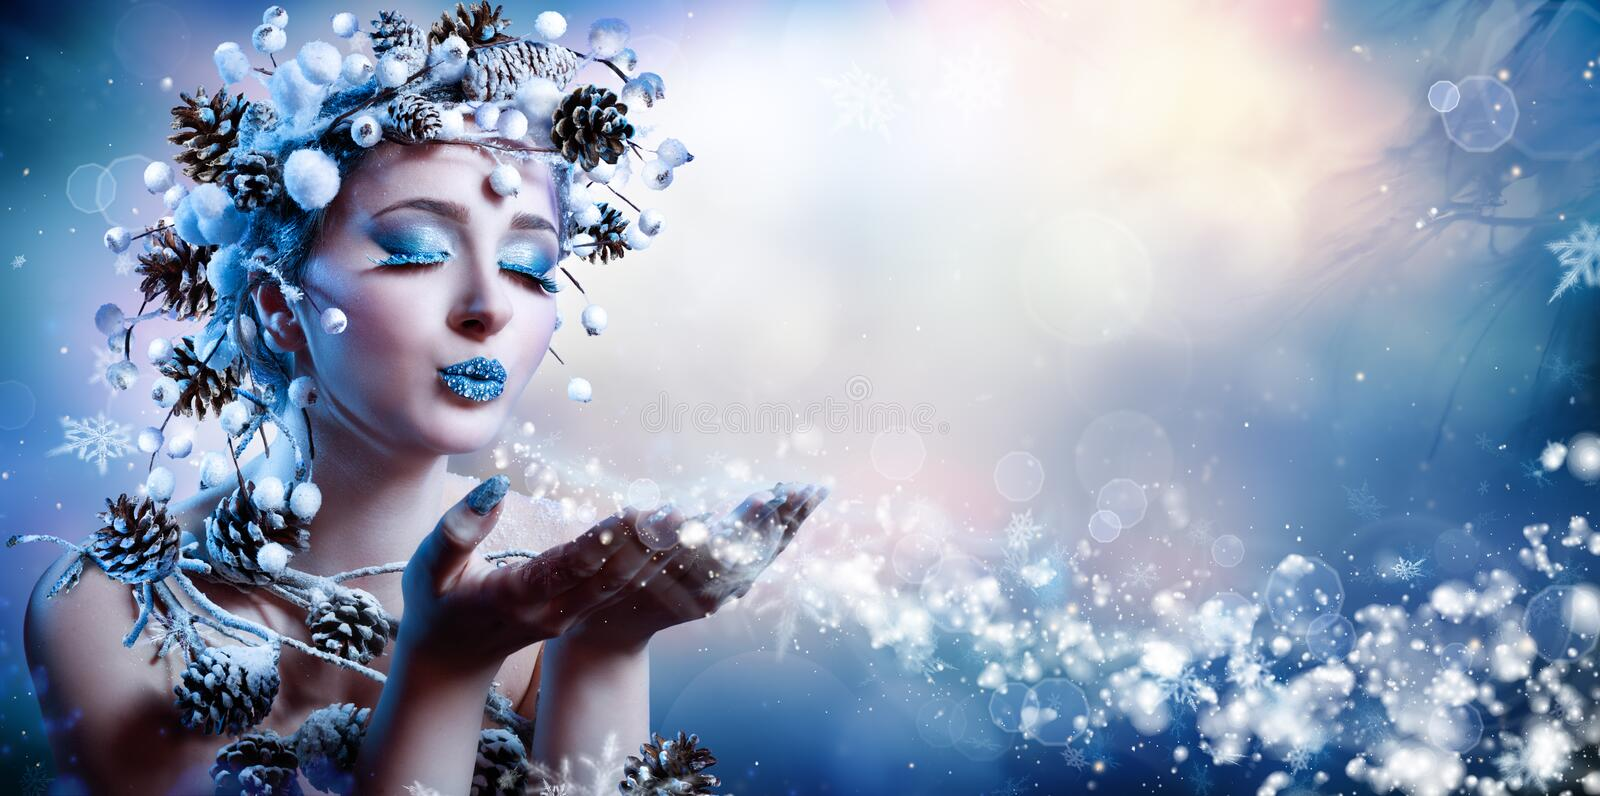 Winter Wish - Model Fashion royalty free stock image